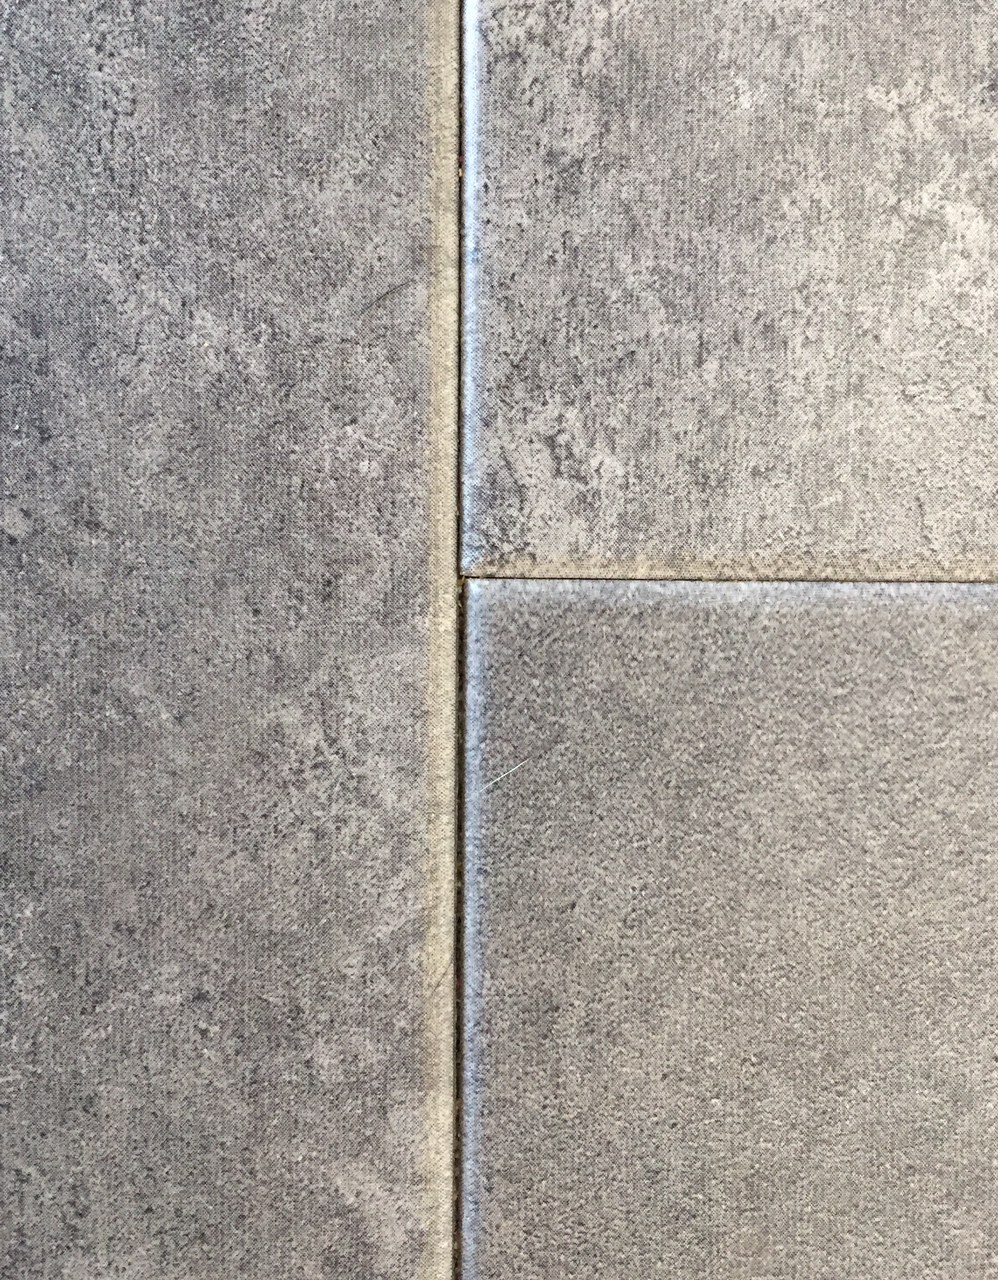 Can I Install Tile Without Grout?